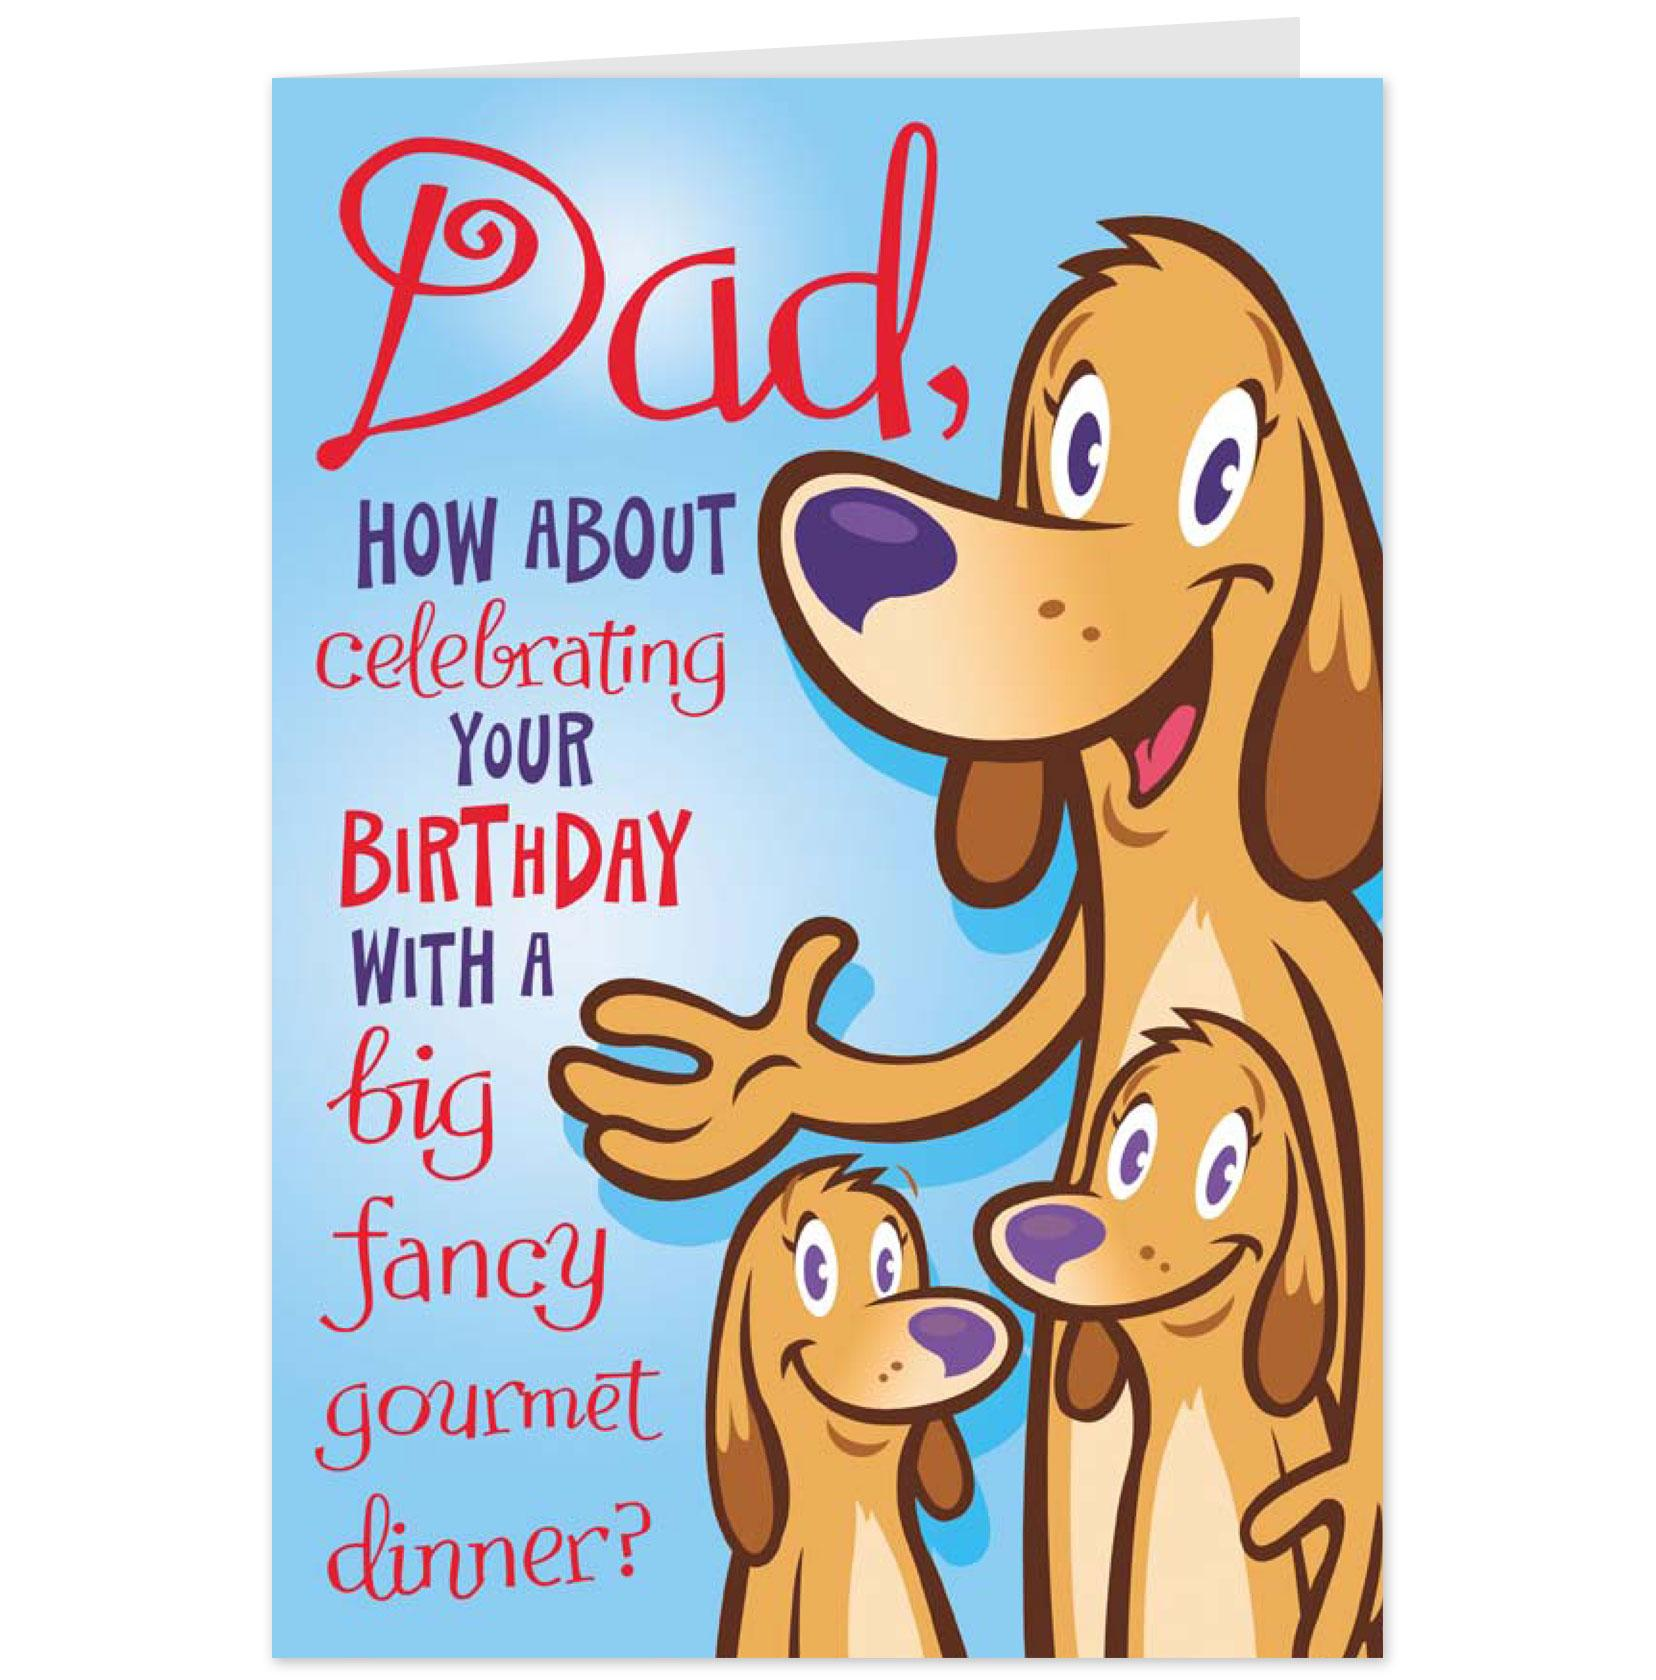 funny birthday card quotes for dad ; e1f08b342f71a025c65ae2b47c8e8628